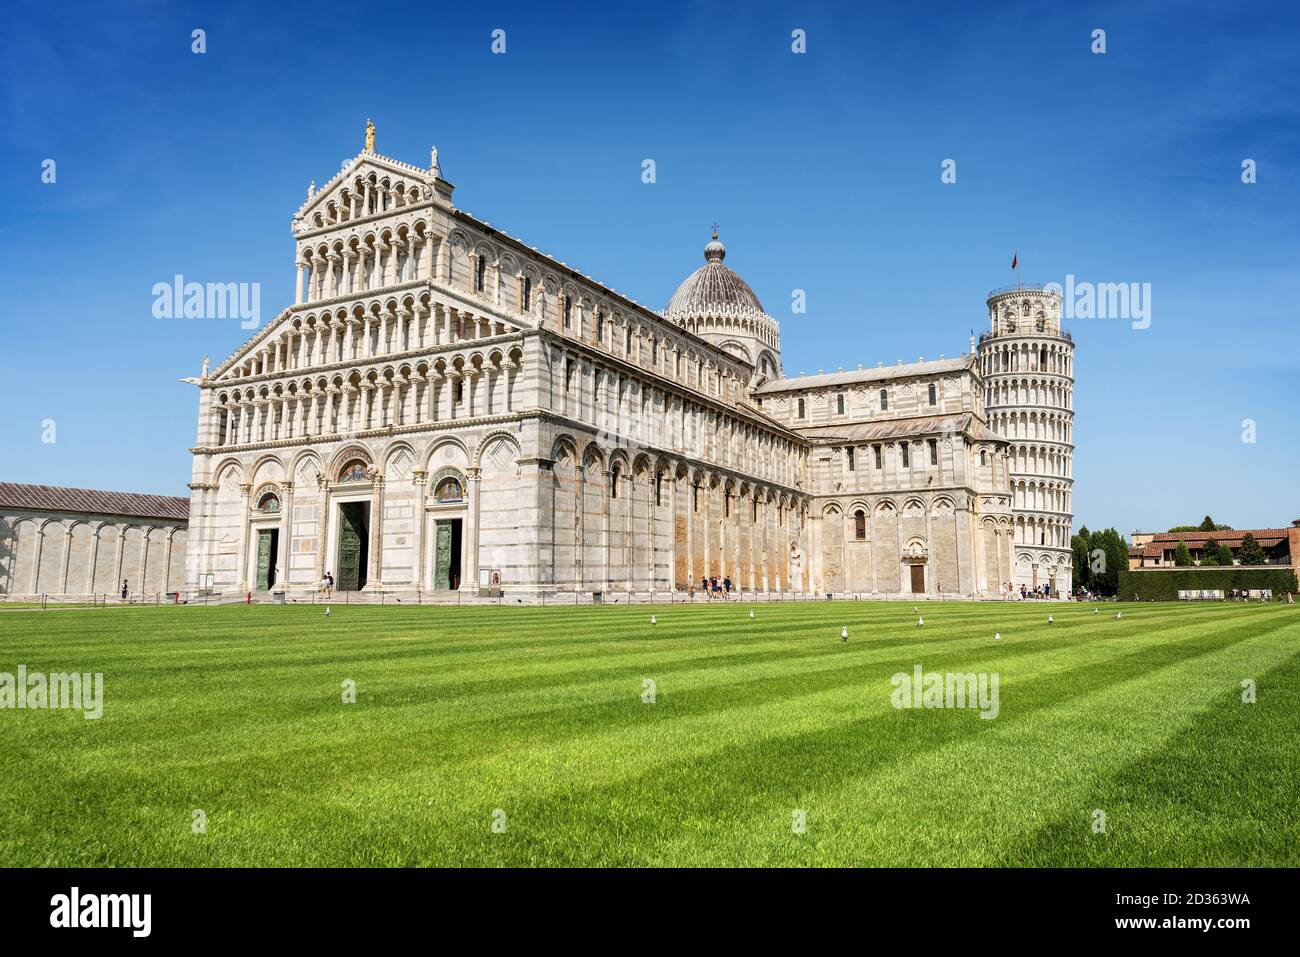 Leaning Tower of Pisa, bell tower of the Cathedral (Duomo di Santa Maria Assunta) in Romanesque style, Piazza dei Miracoli. Tuscany, Italy, Europe. Stock Photo